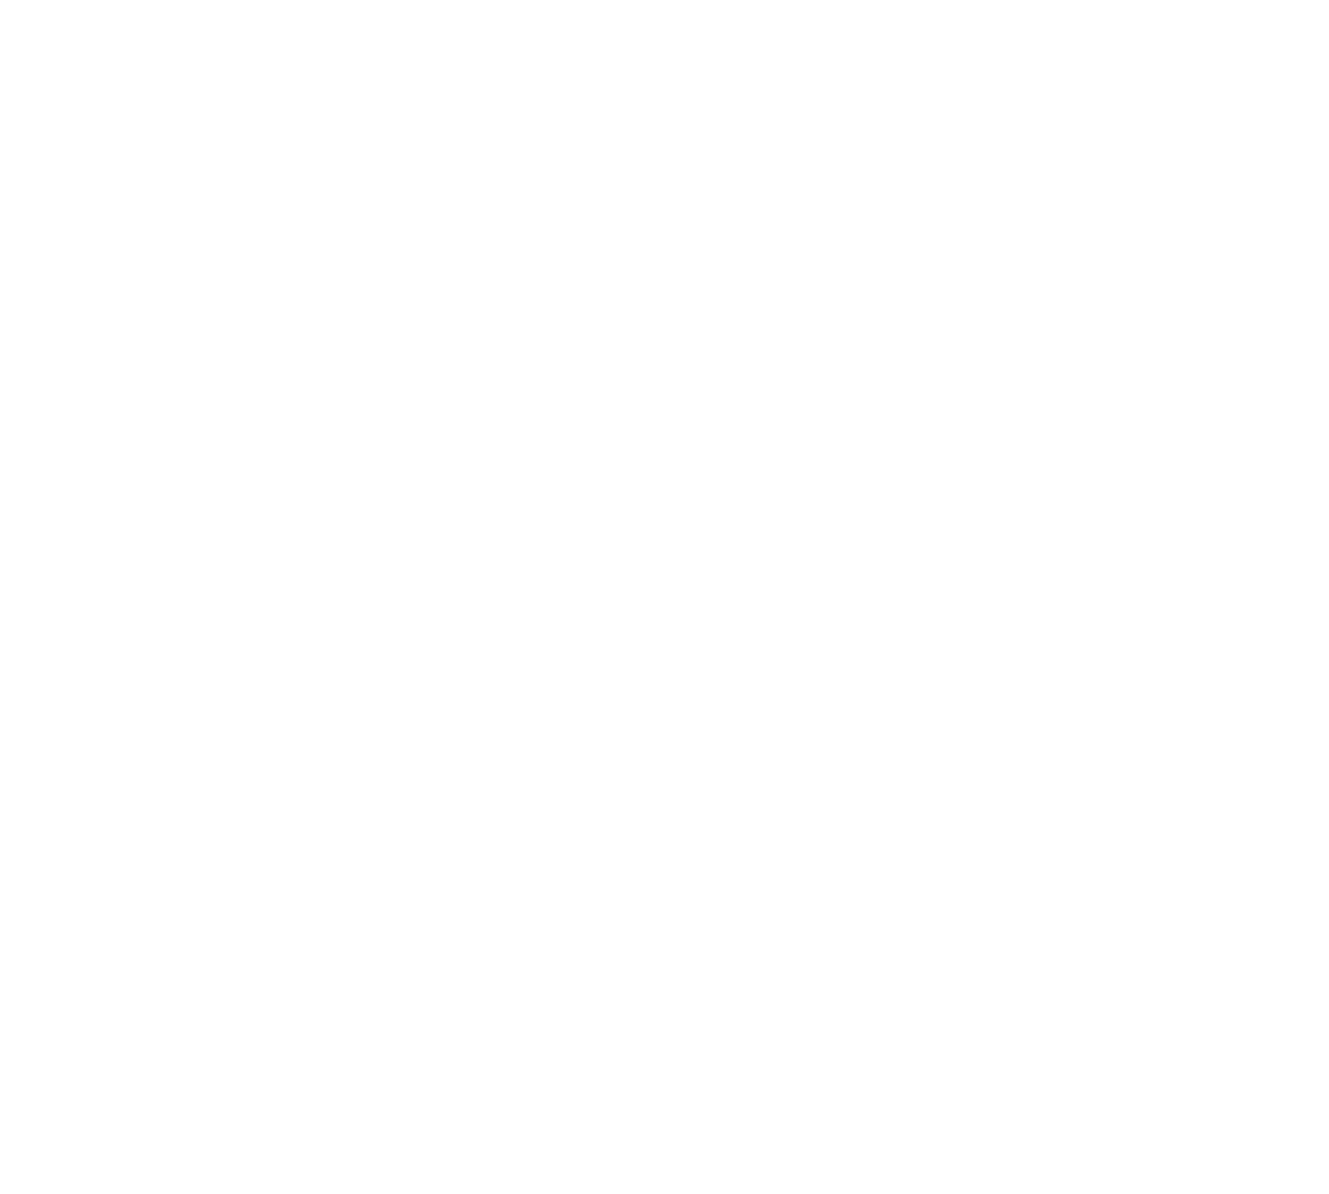 Reputation Runner